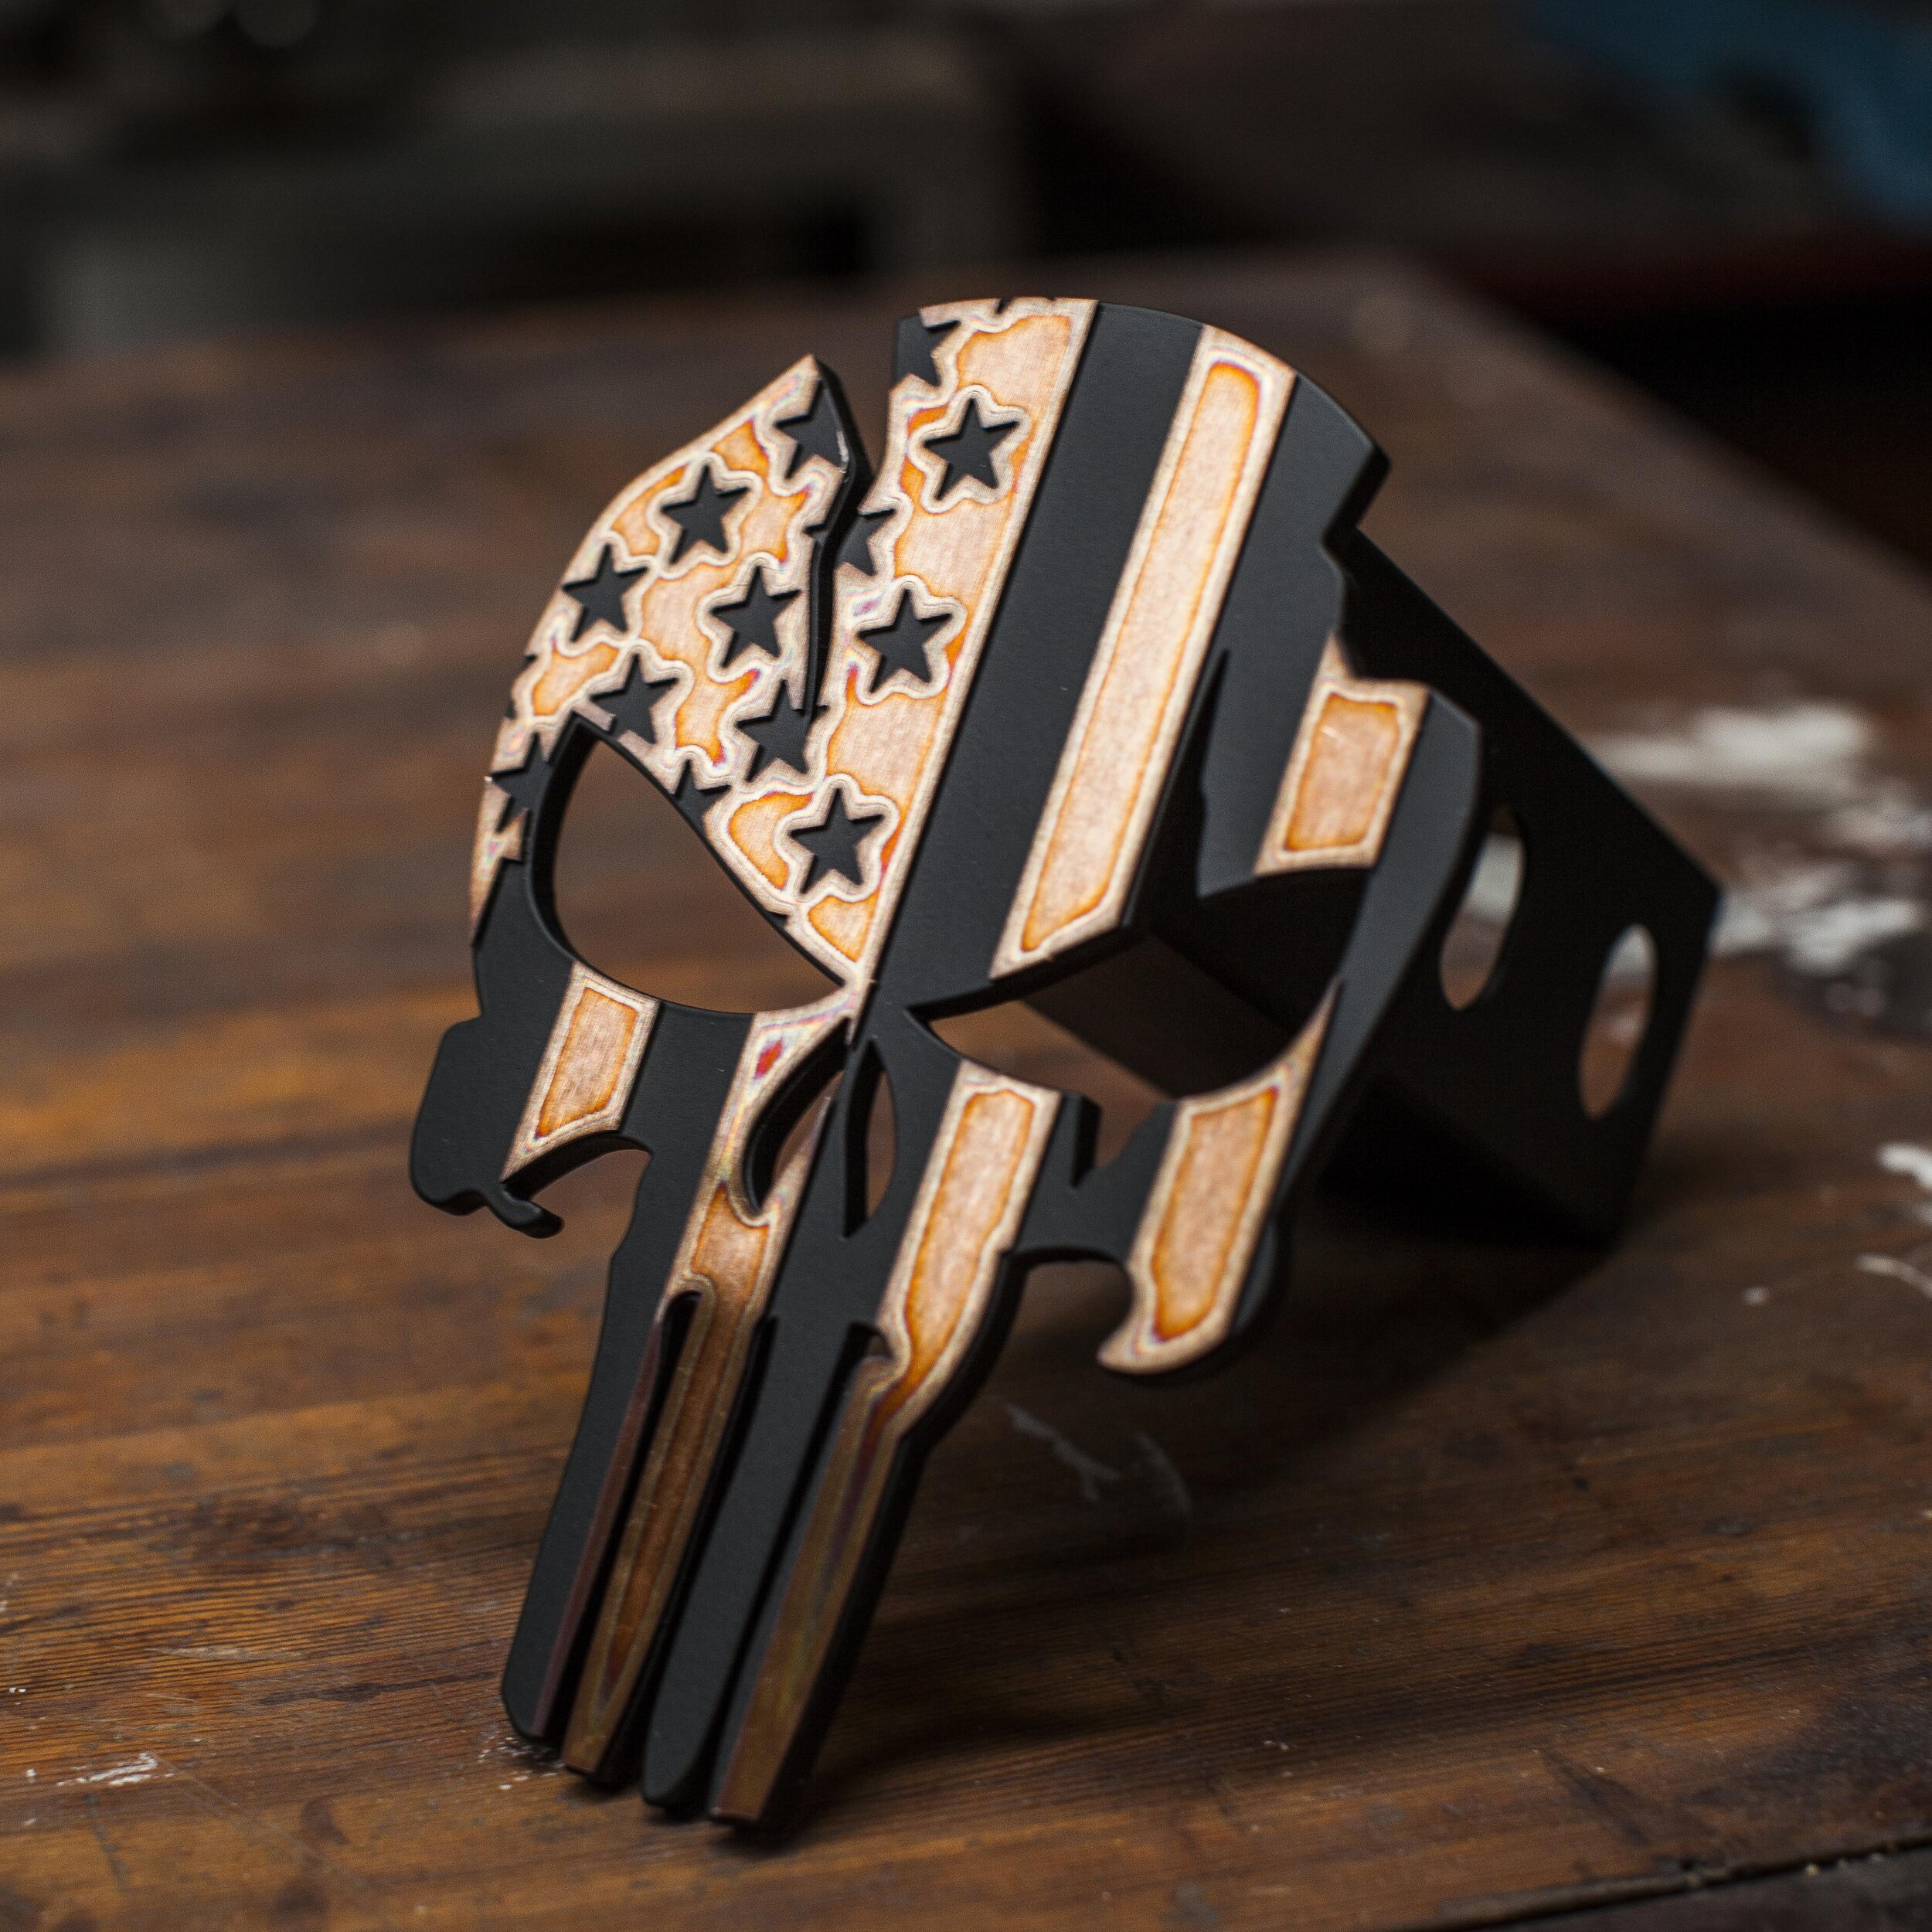 Kempter Kustoms Punisher Distressed Red Trailer Hitch Cover